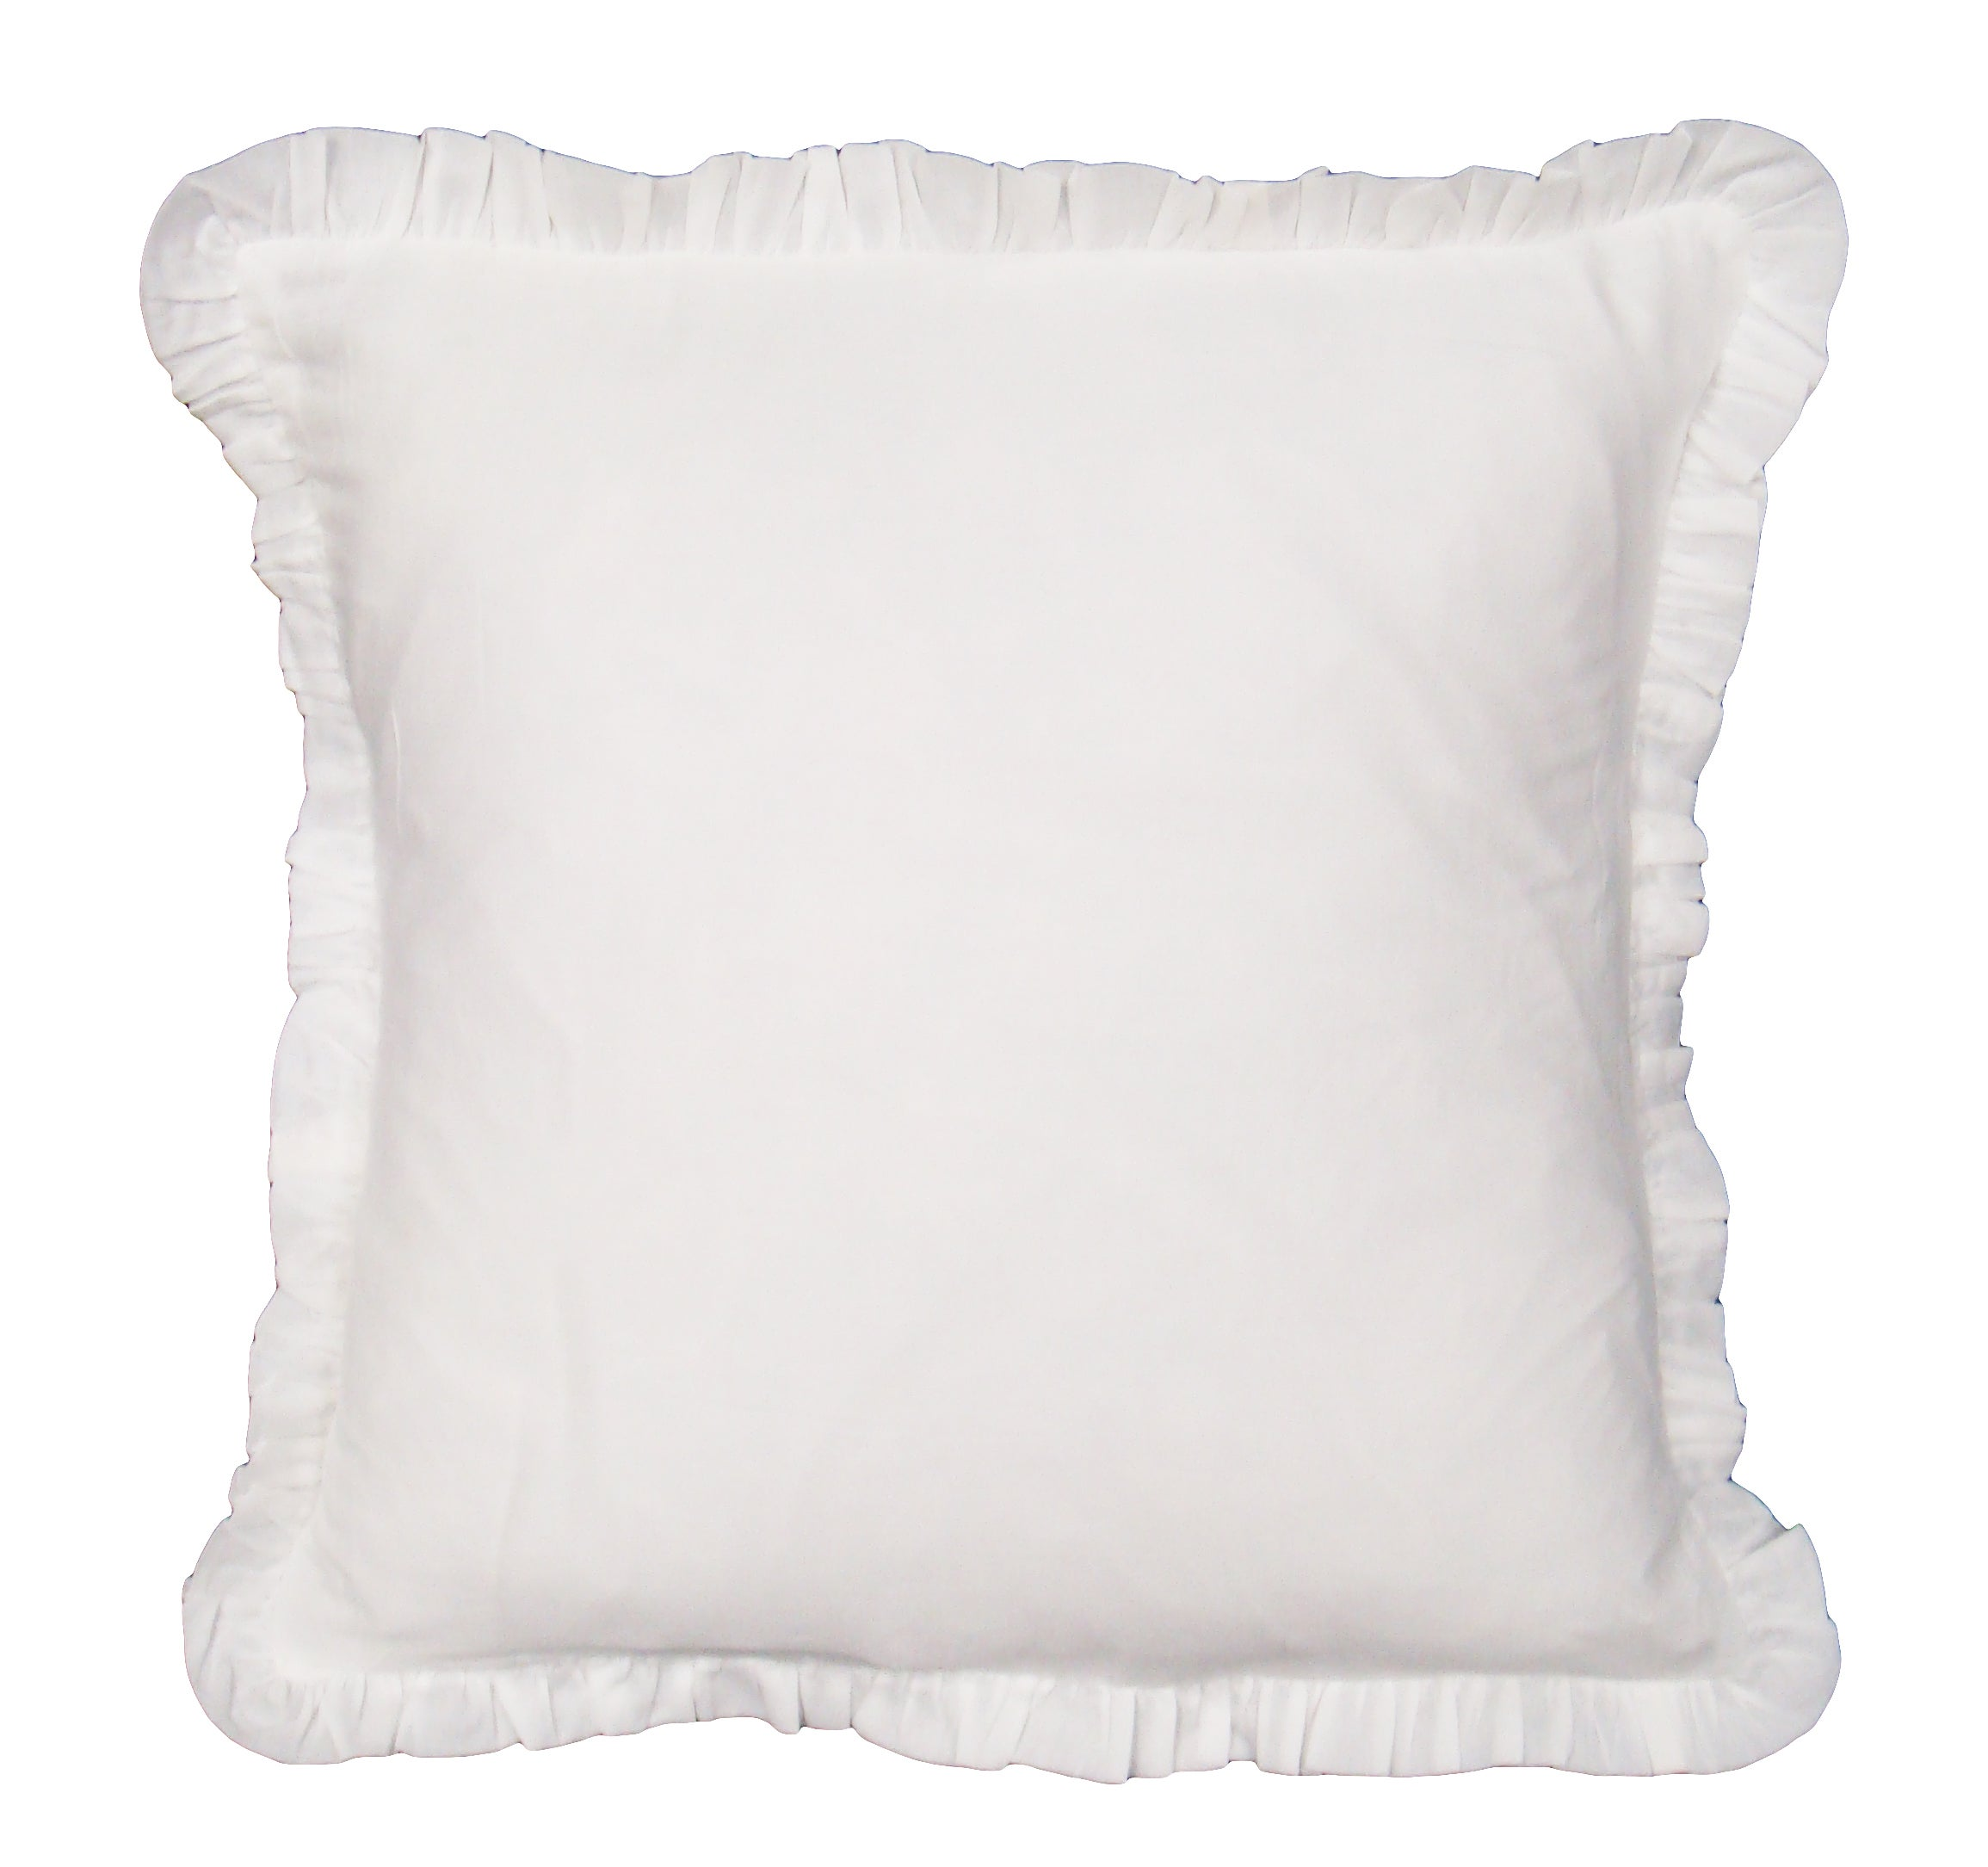 Big White Throw Pillows : Acelin White Decorative Pillow - Free Shipping Today - Overstock.com - 13864978